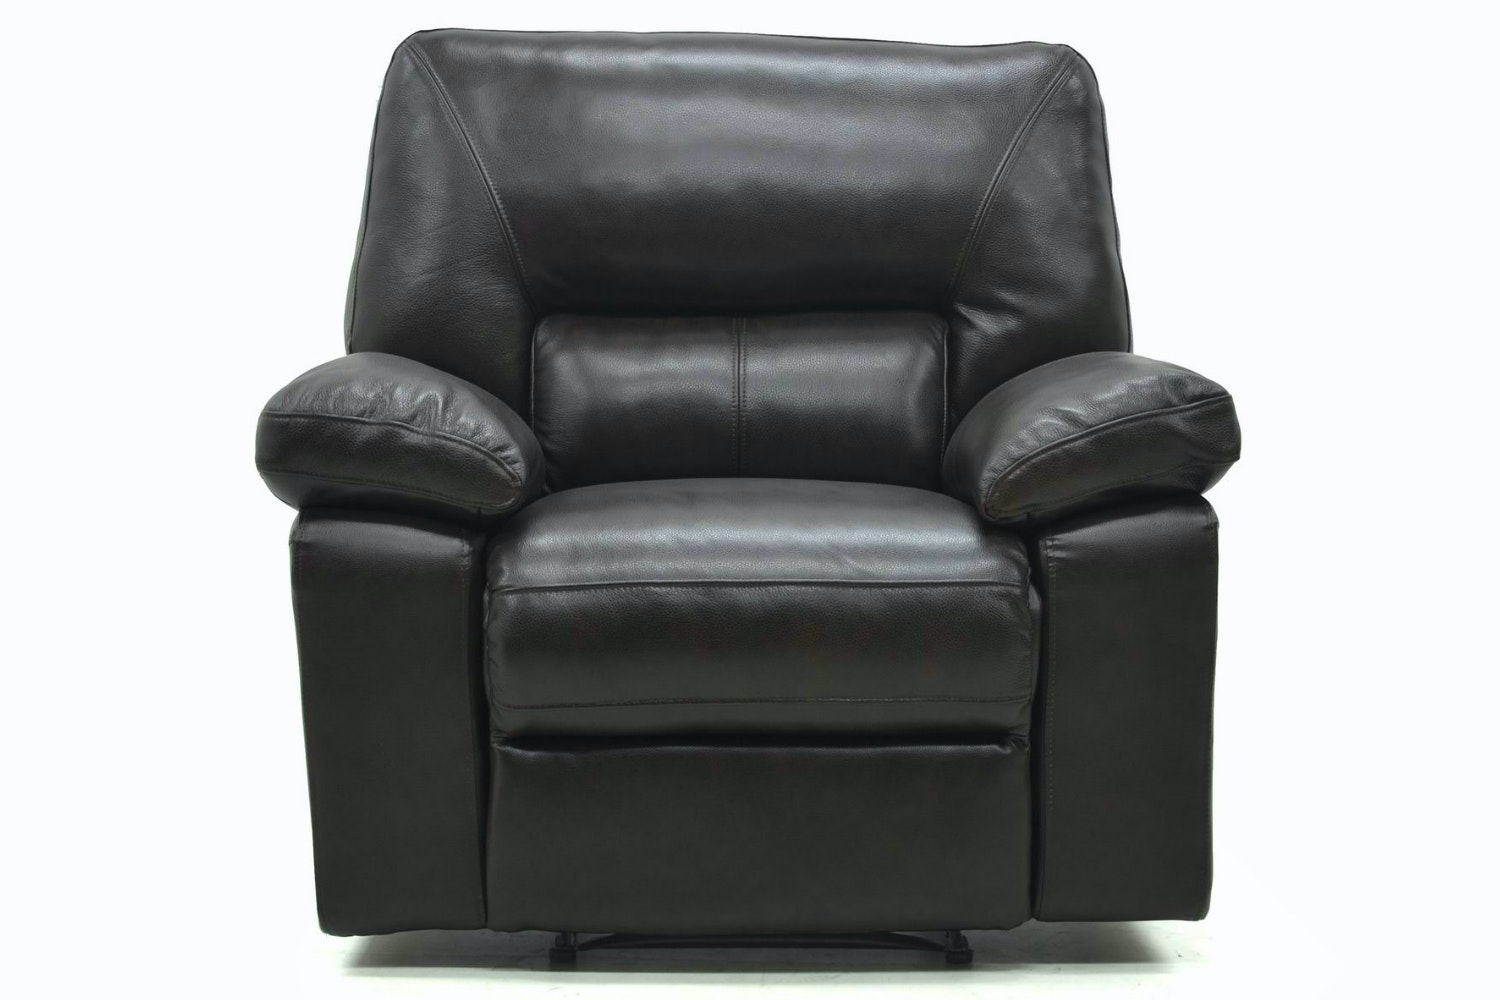 Cala Leather Recliner Armchair